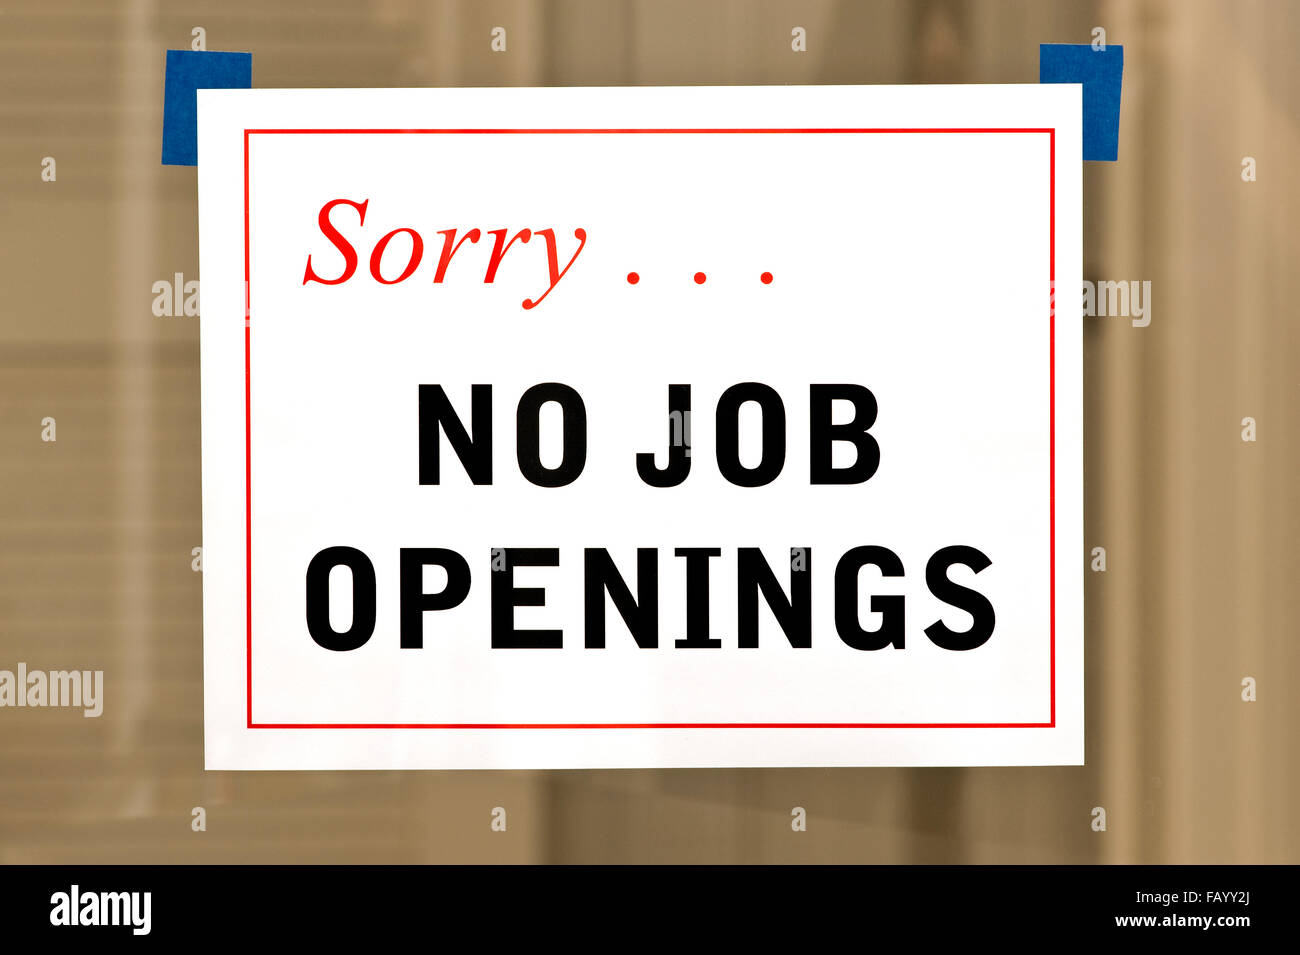 No Job Openings Stock Photo